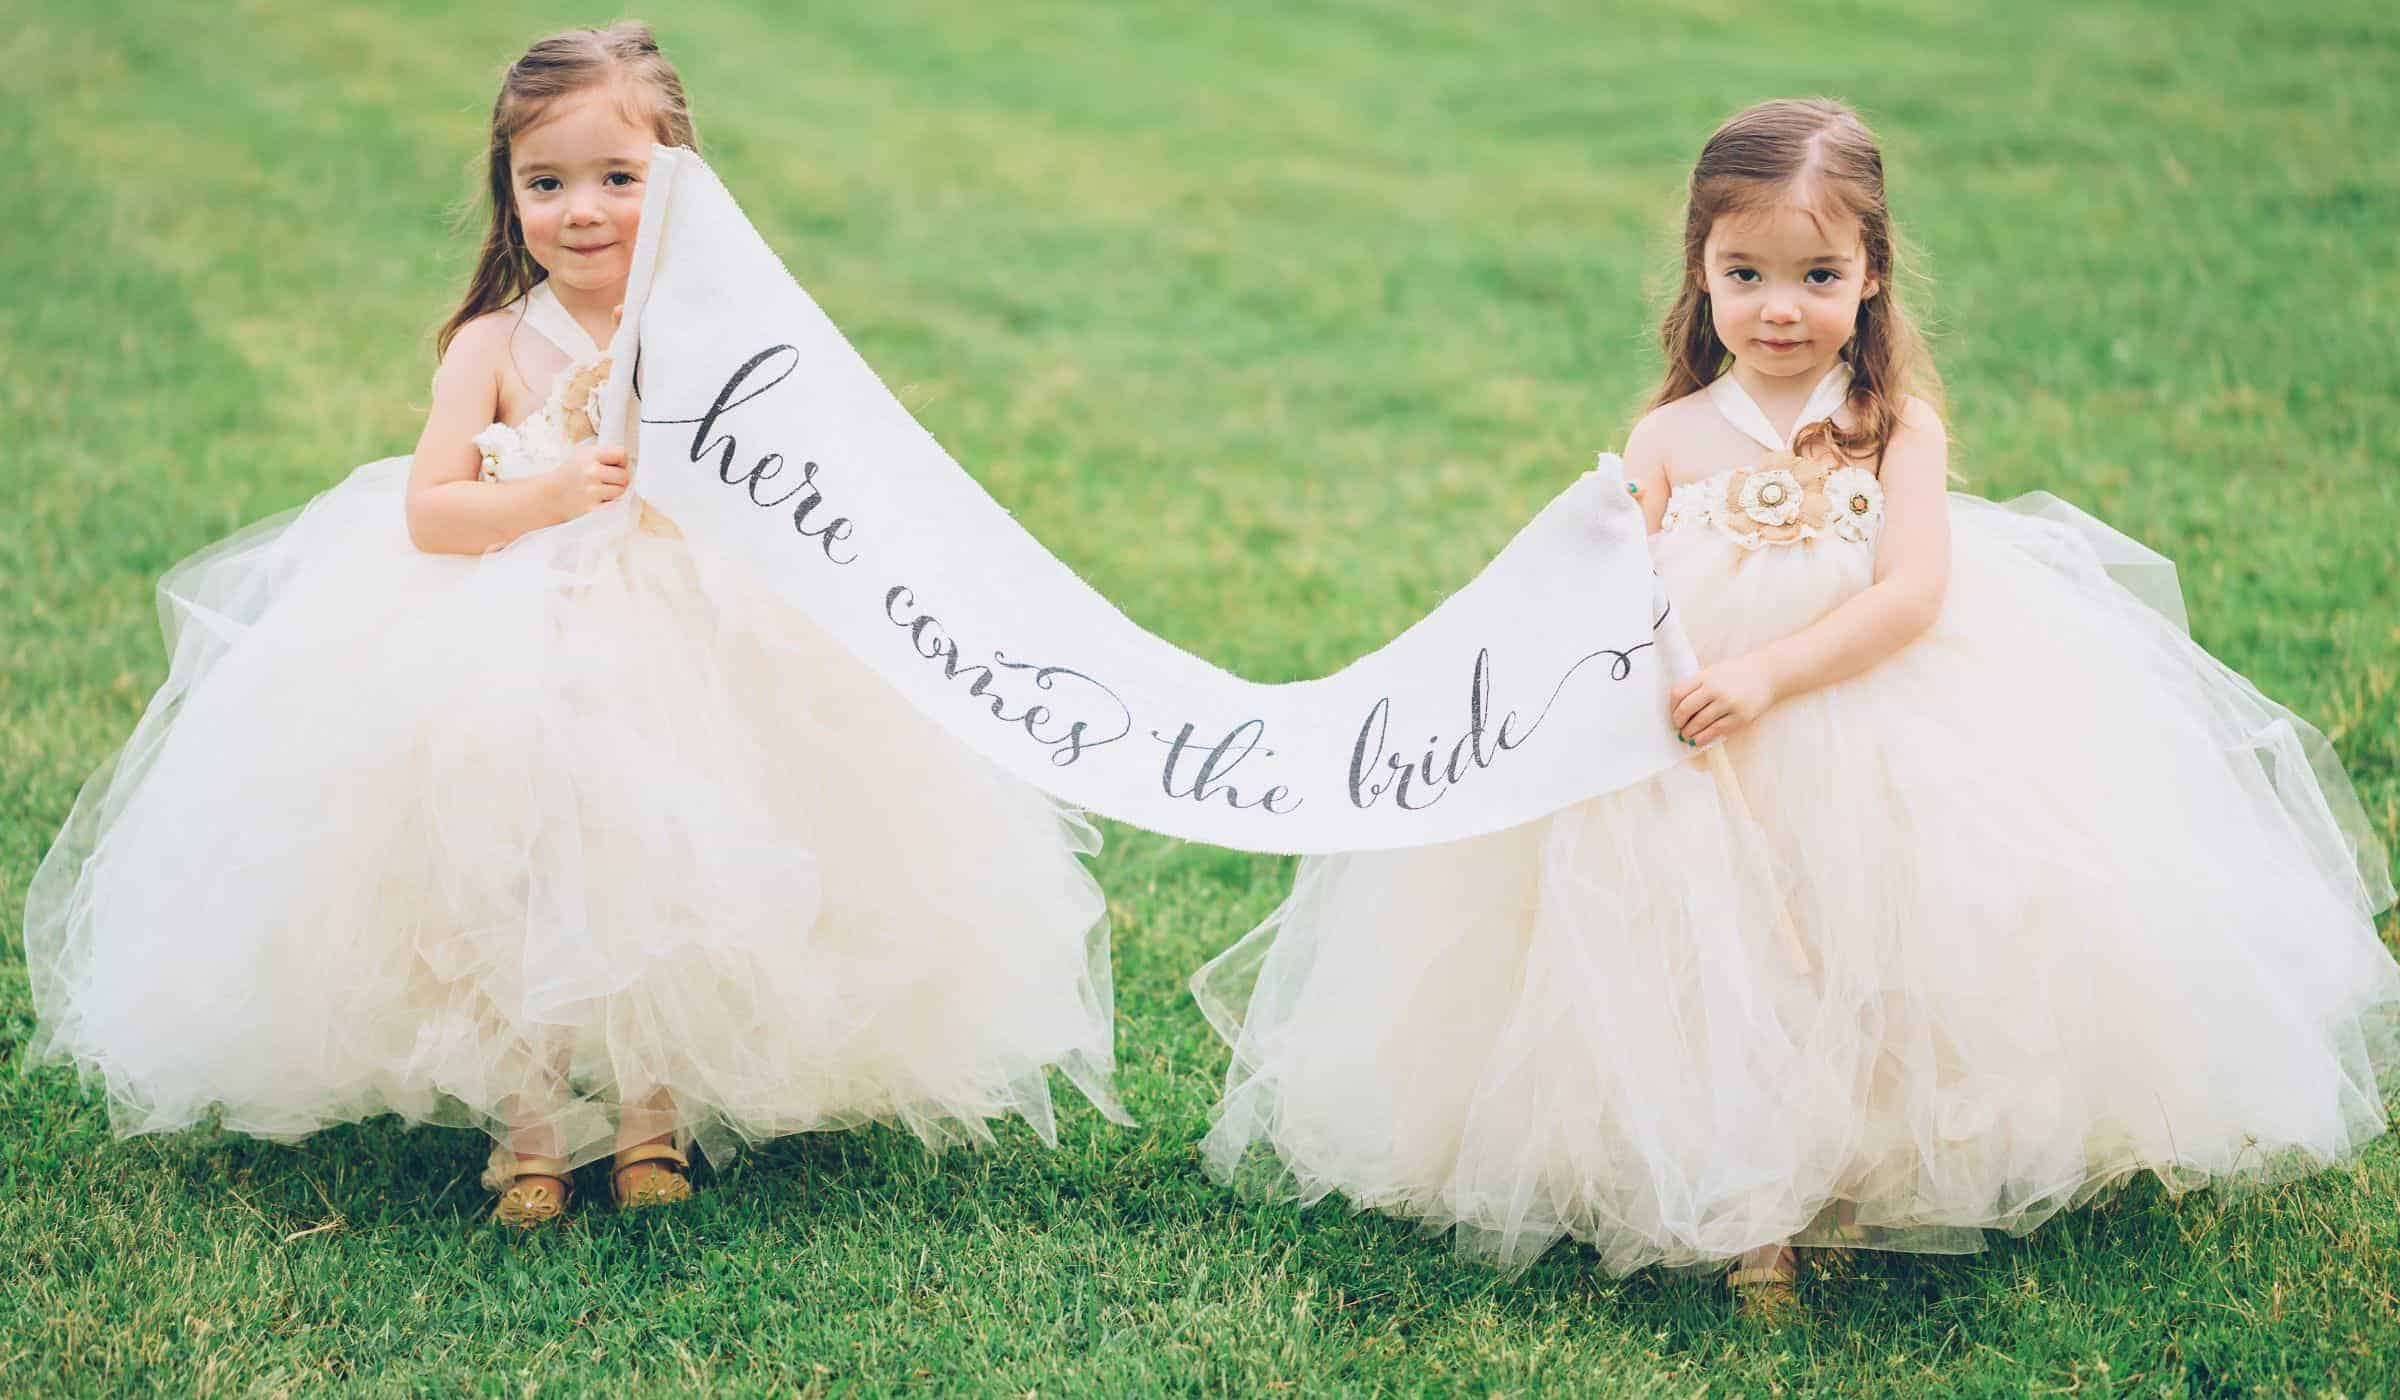 """twins flowers girls with the signs """"here comes the bride"""""""